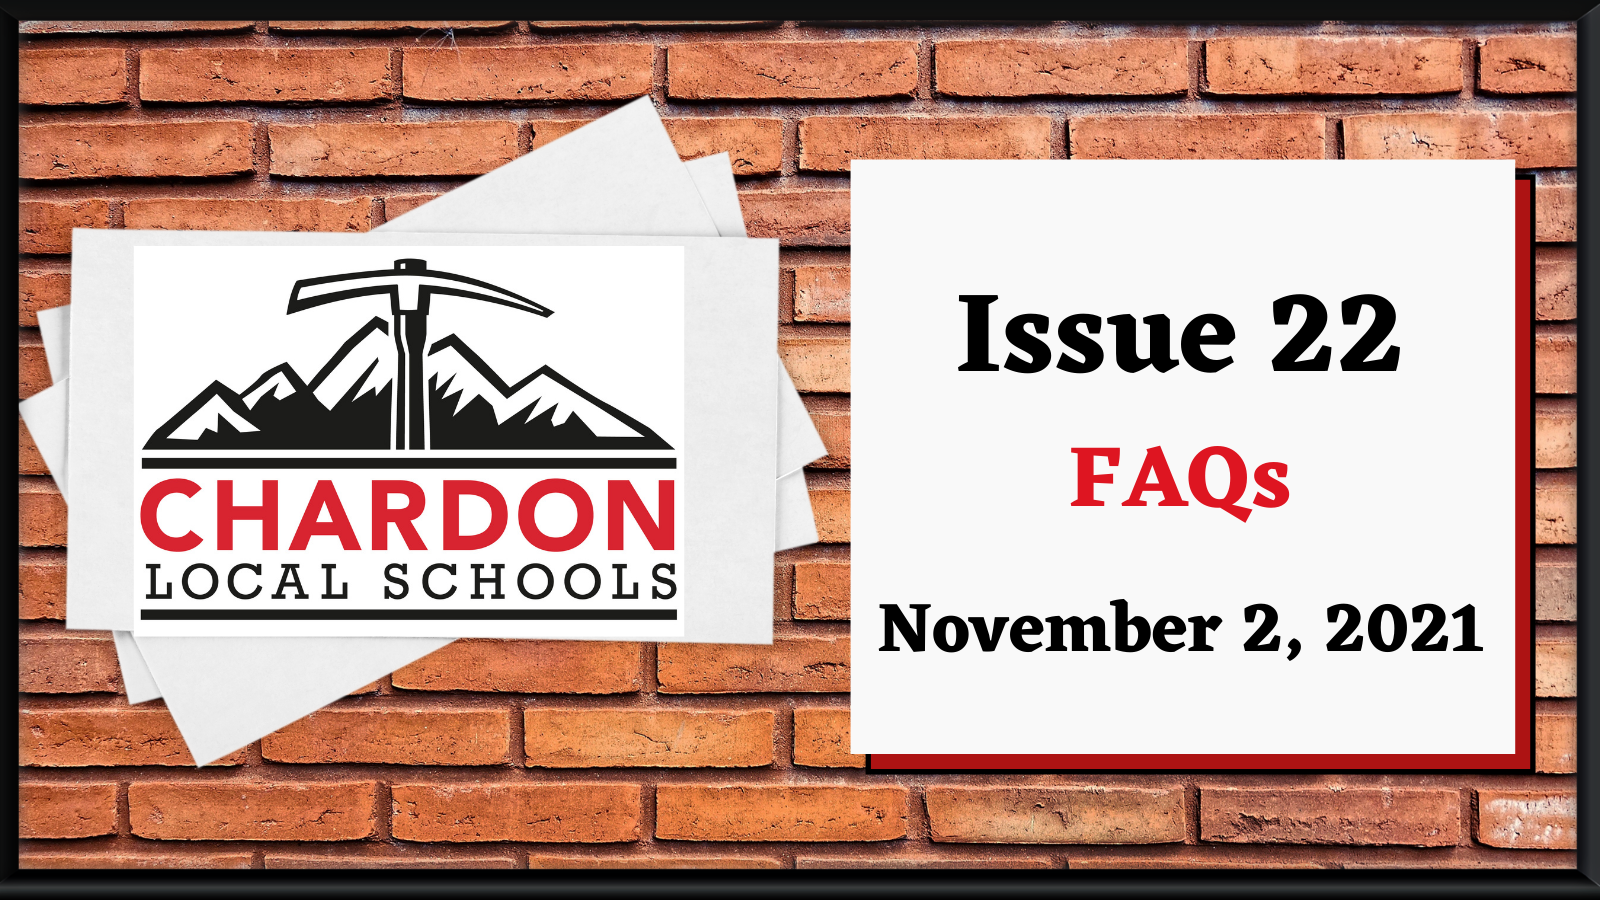 graphic collage featuring a brick background; Chardon Local Schools mountain axe logo (red, white, black); and verbiage:  Issue 22 FAQs November 2, 2021